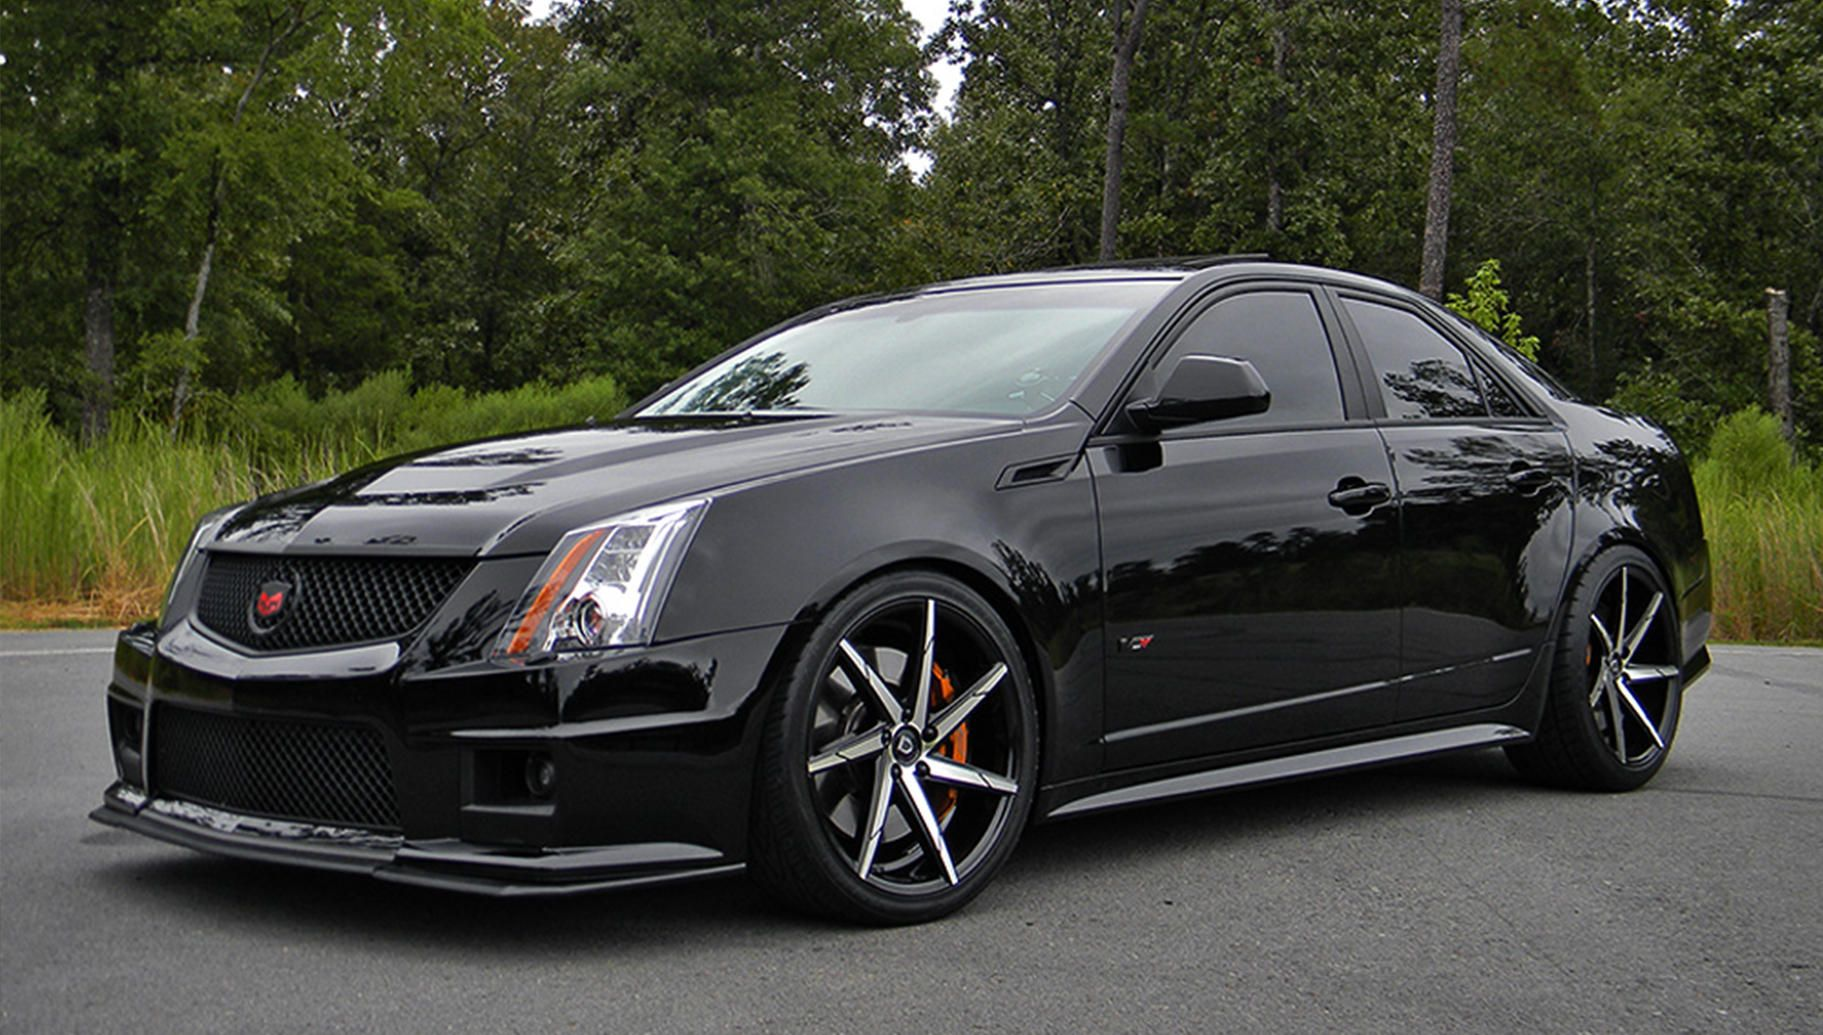 Lexani css 7 on the 2015 cadillac cts v